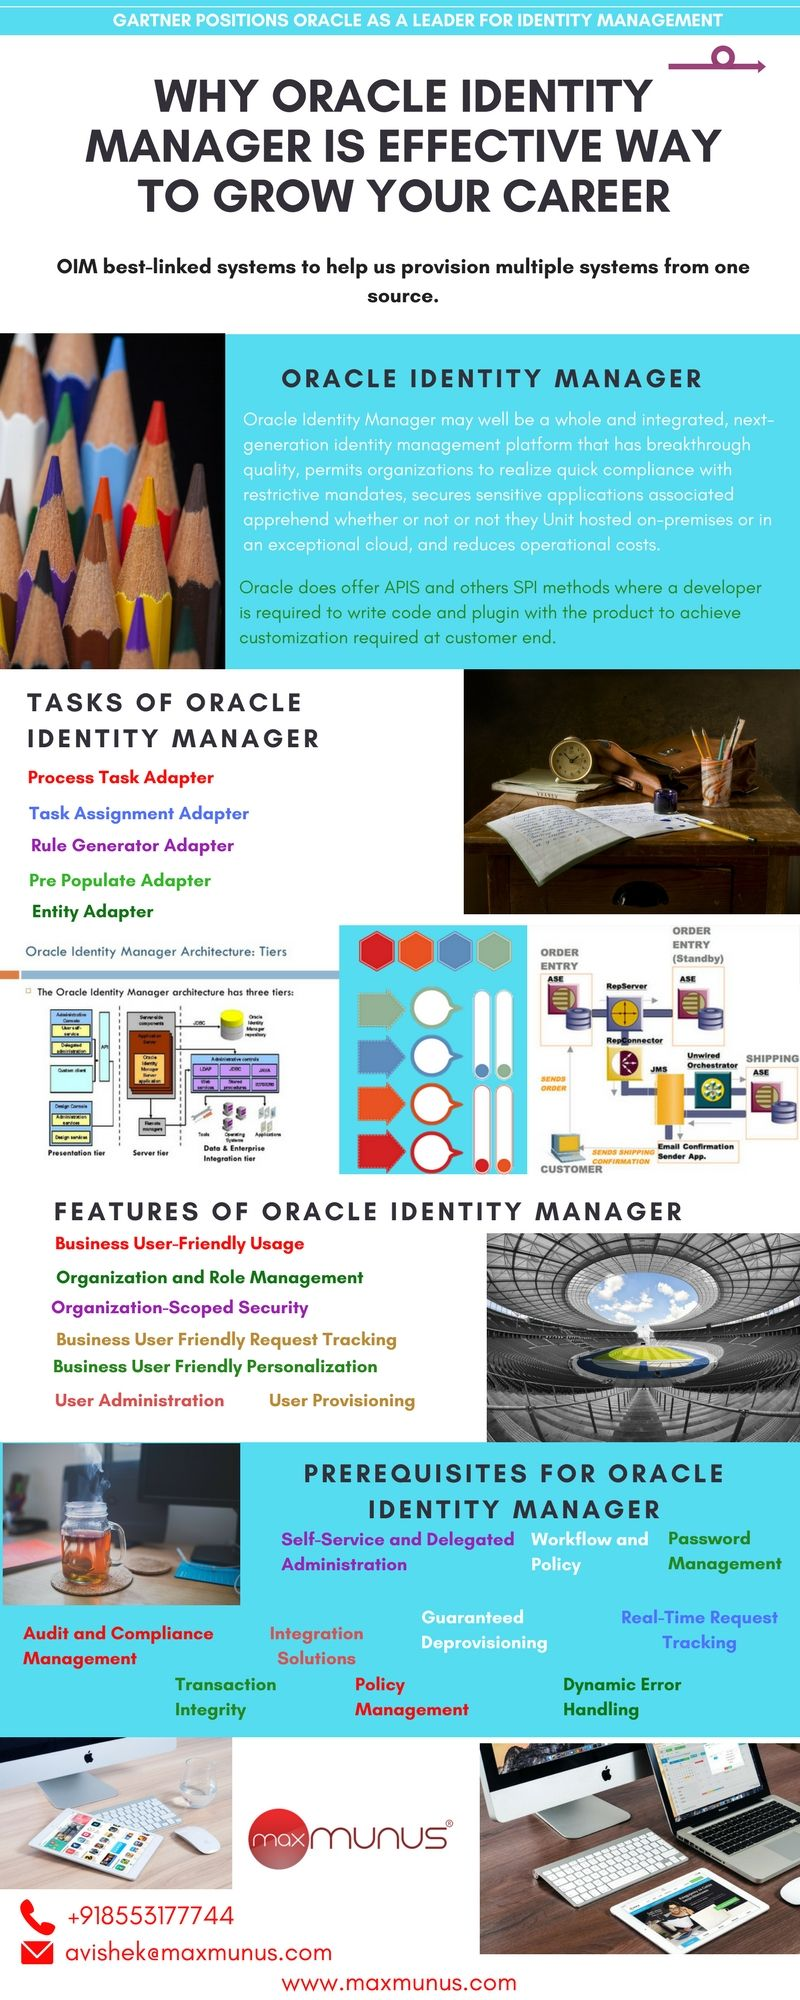 Oracle identity manager tutorial for beginners oracle identity oracle identity manager tutorial for beginners oracle identity manager online training which maxmunus is providing contains a soft copy of study materials baditri Images